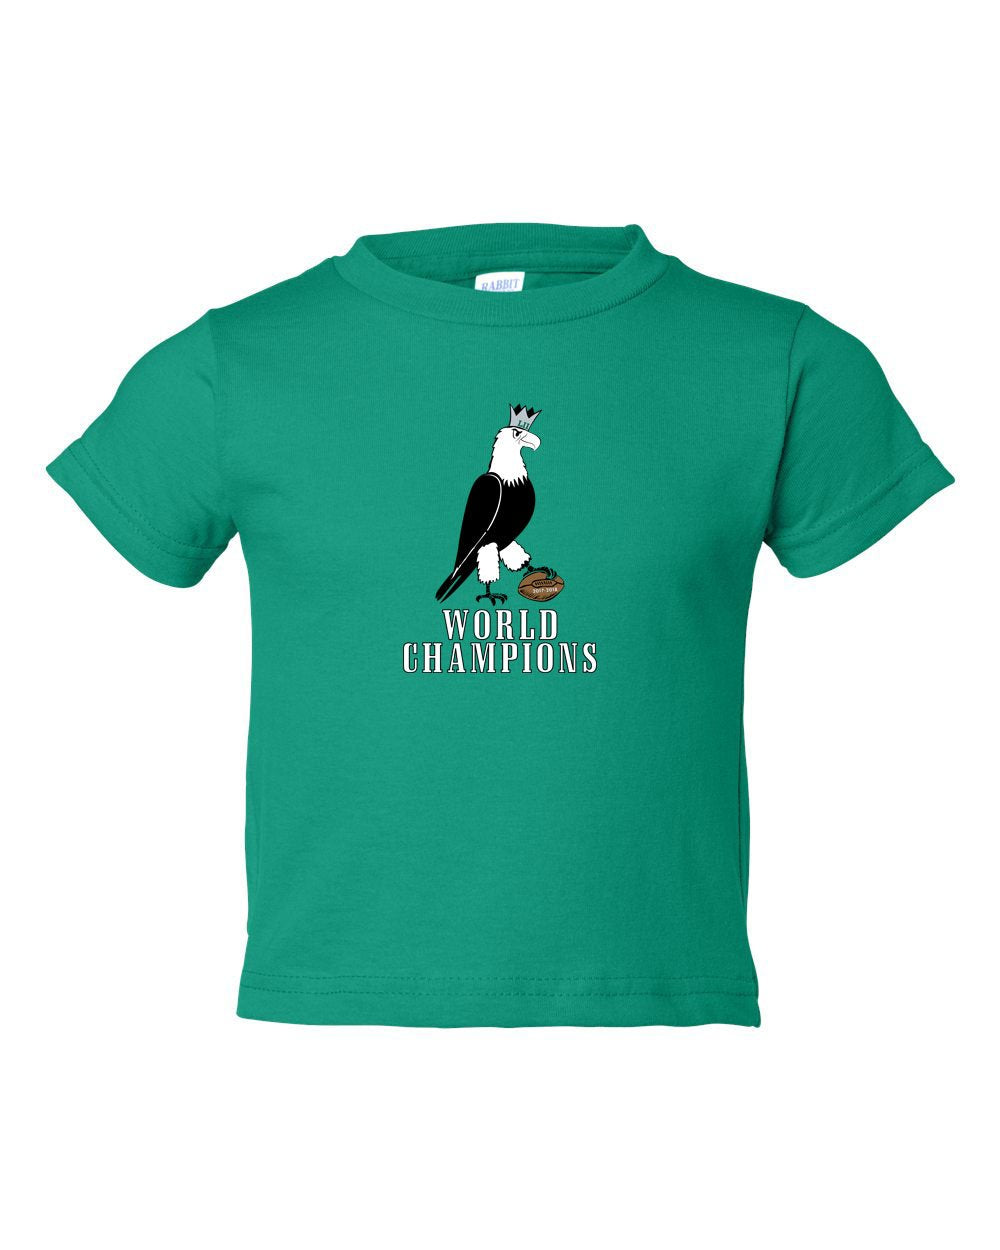 Vintage Eagle Champs TODDLER T-Shirt